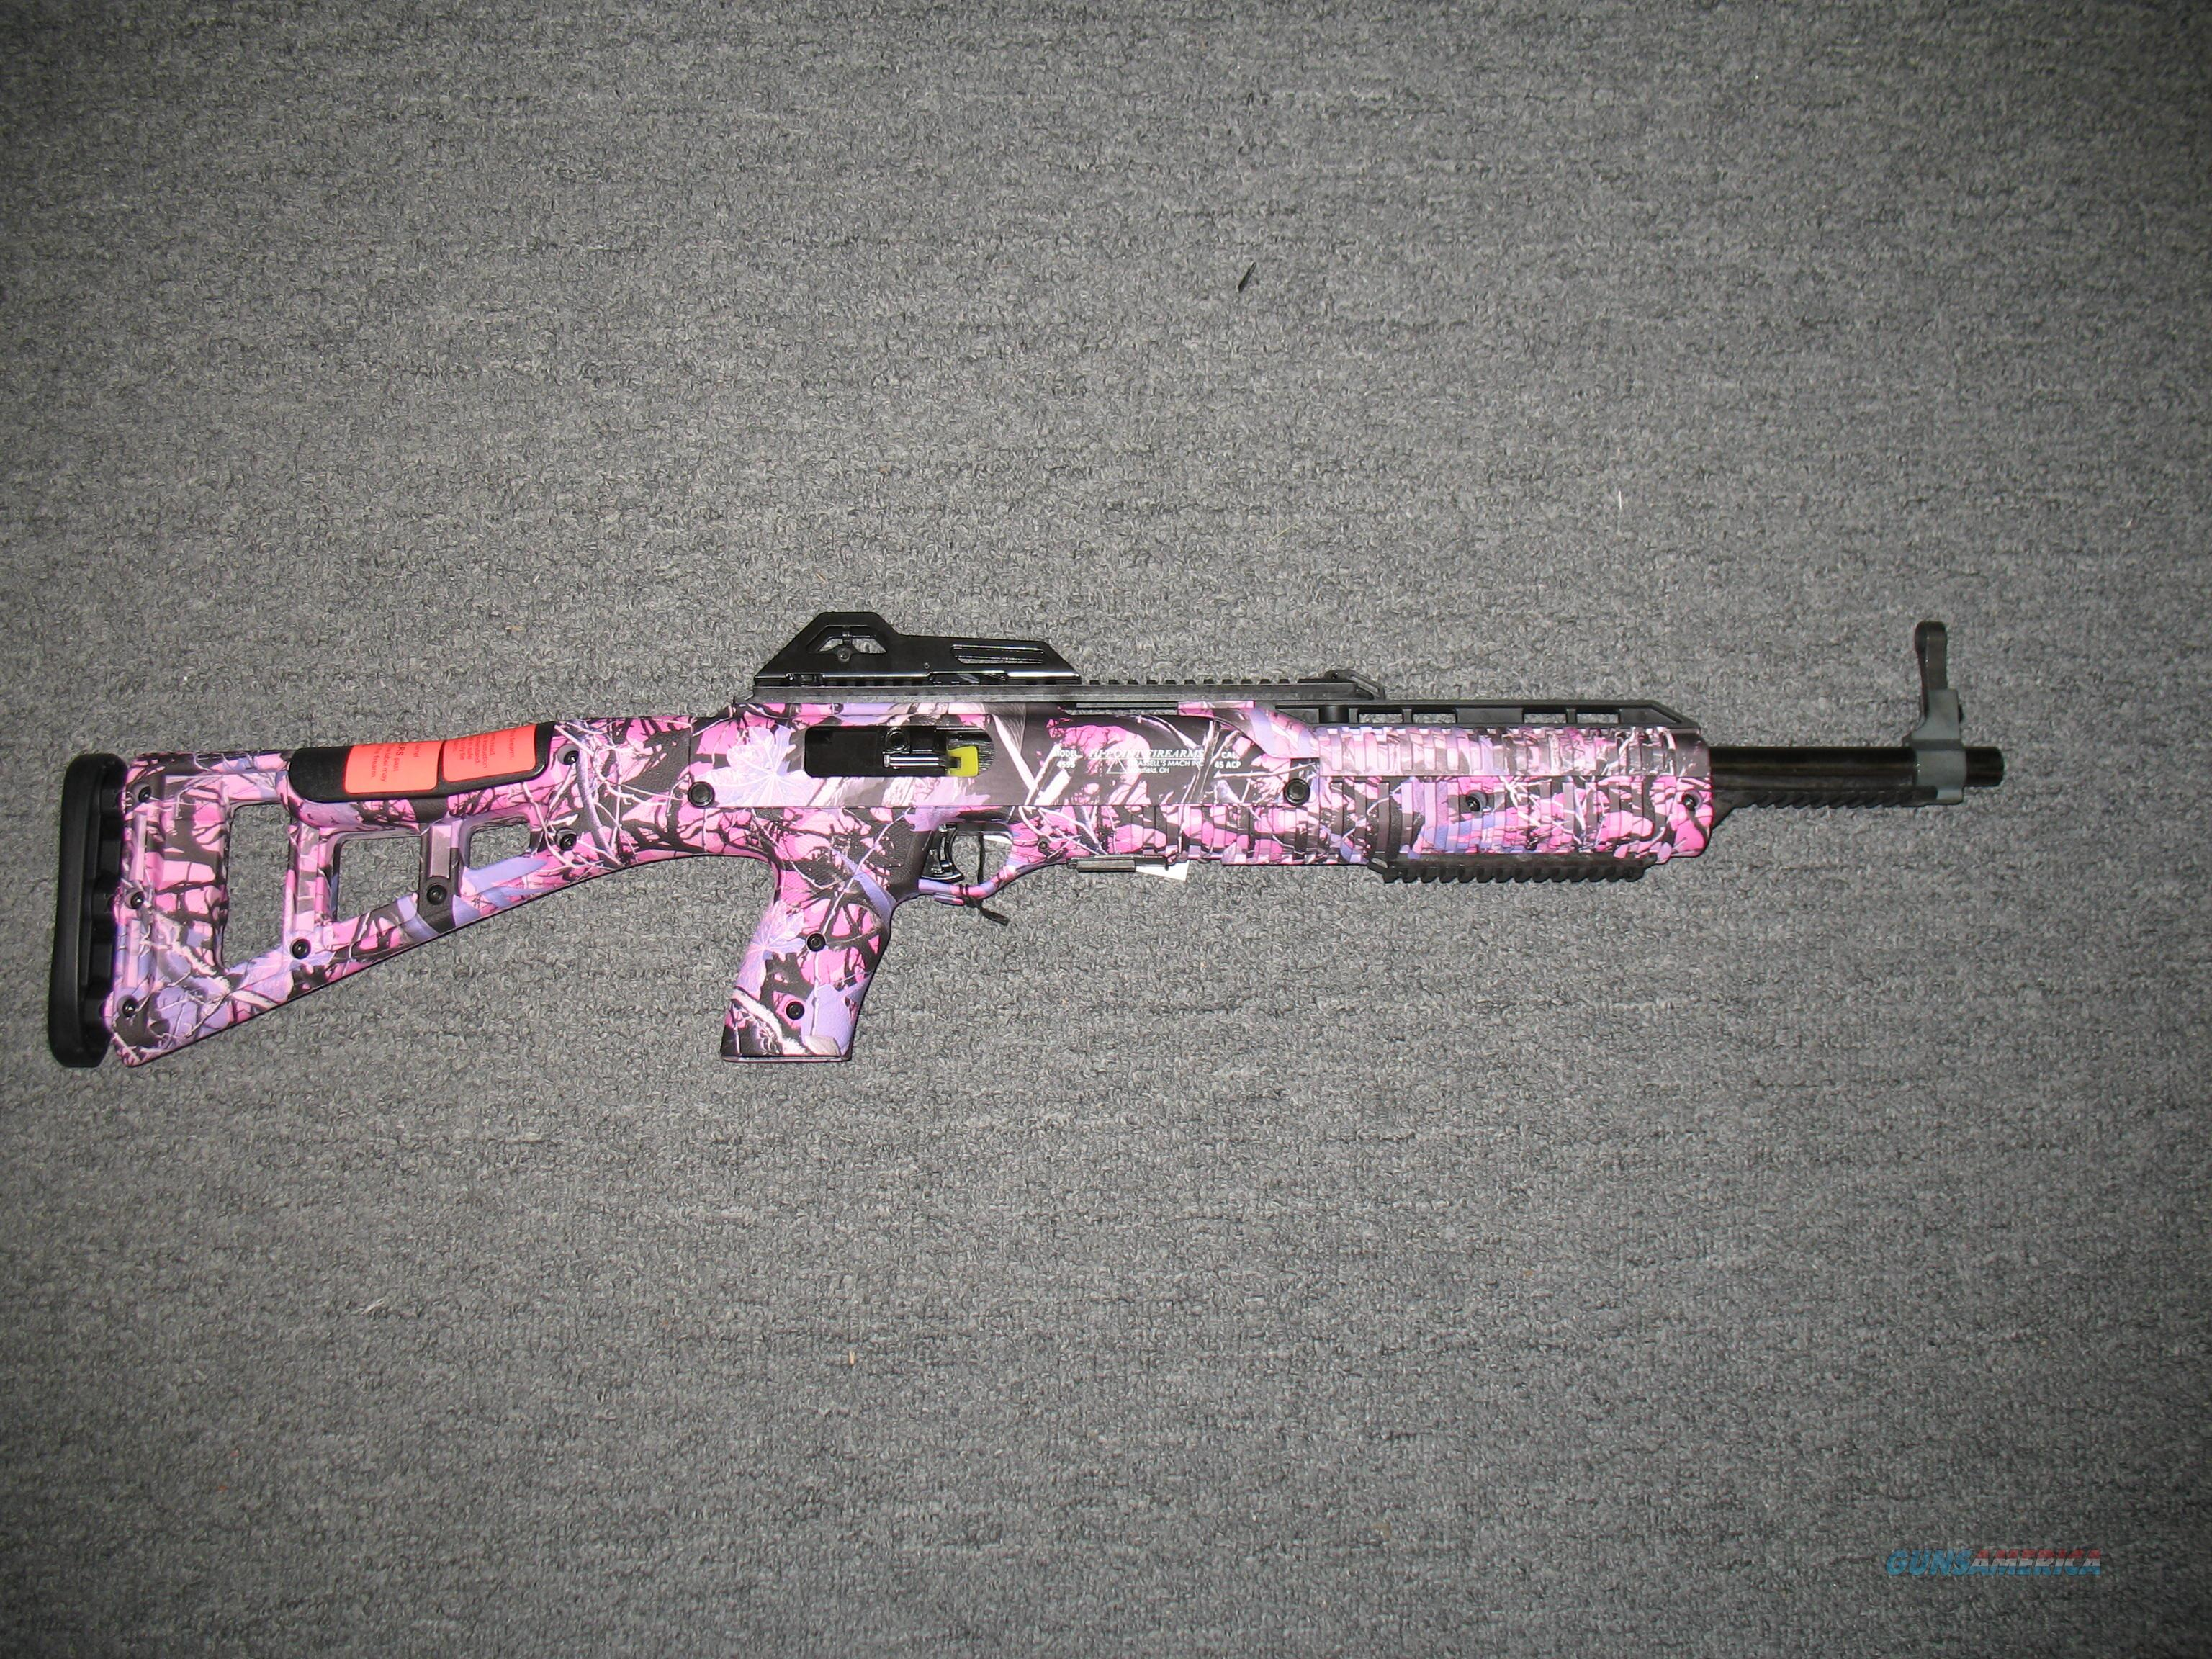 4595 w/pink camo and black finish  Guns > Rifles > Hi Point Rifles